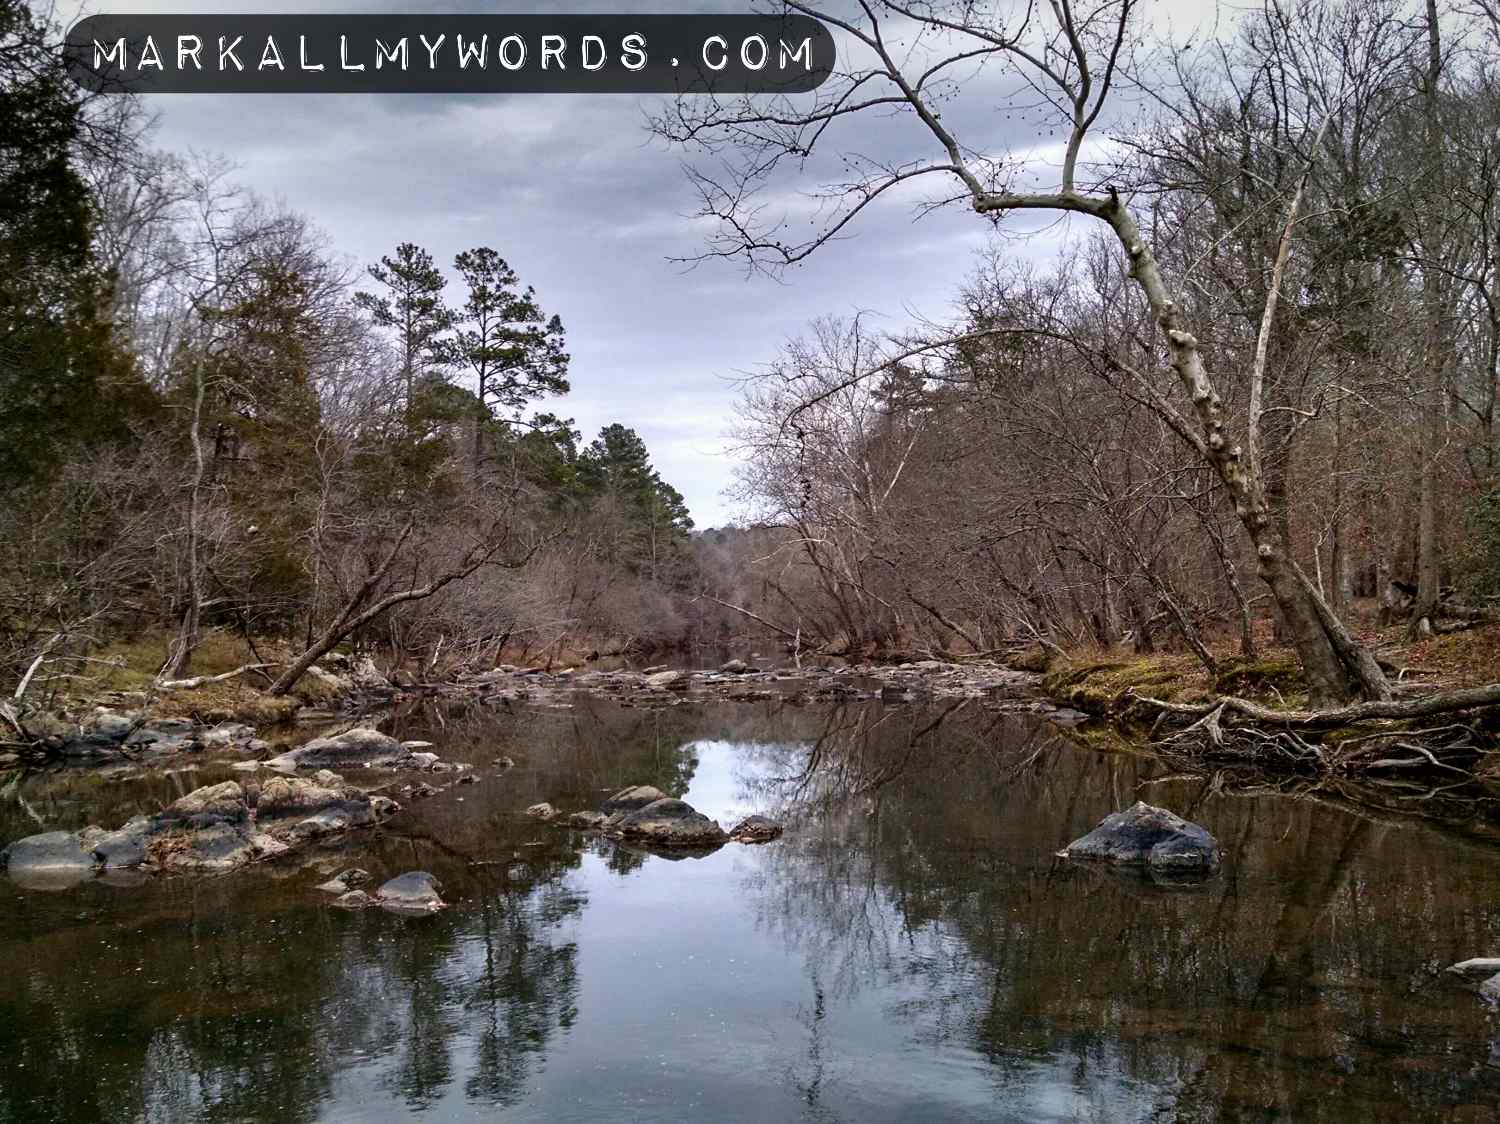 Eno River near the old site of Cabe Mill